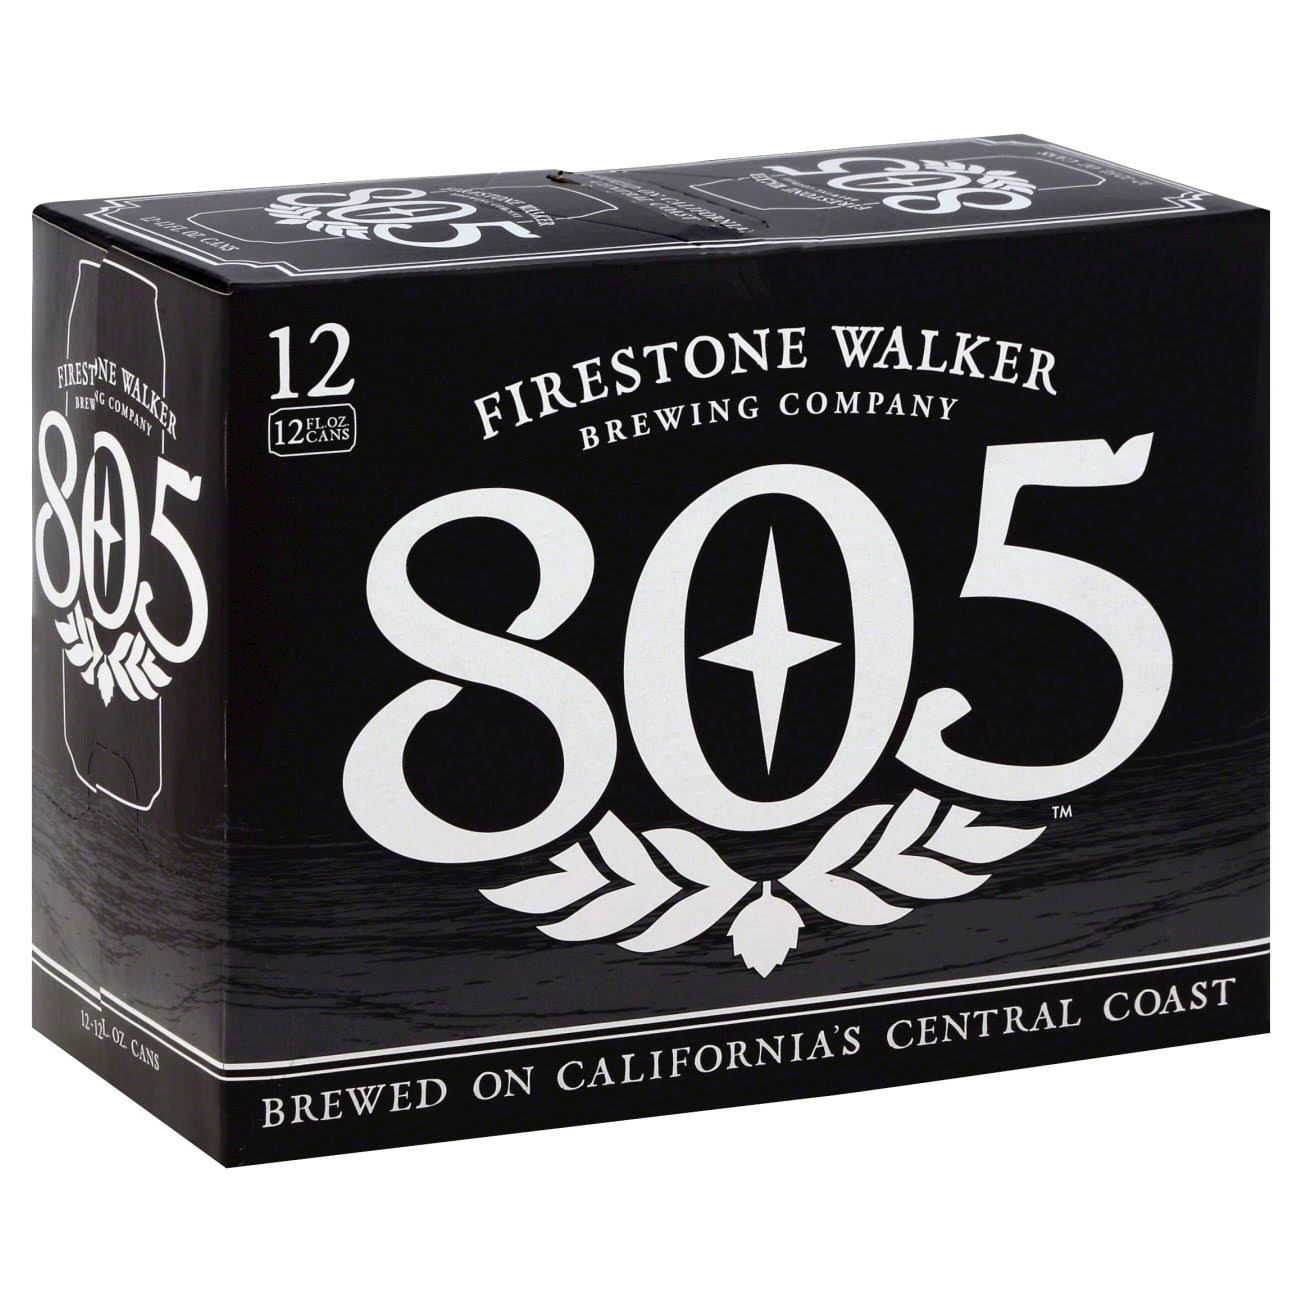 Firestone Walker Beer, Ale, 805 - 12 pack, 12 fl oz cans